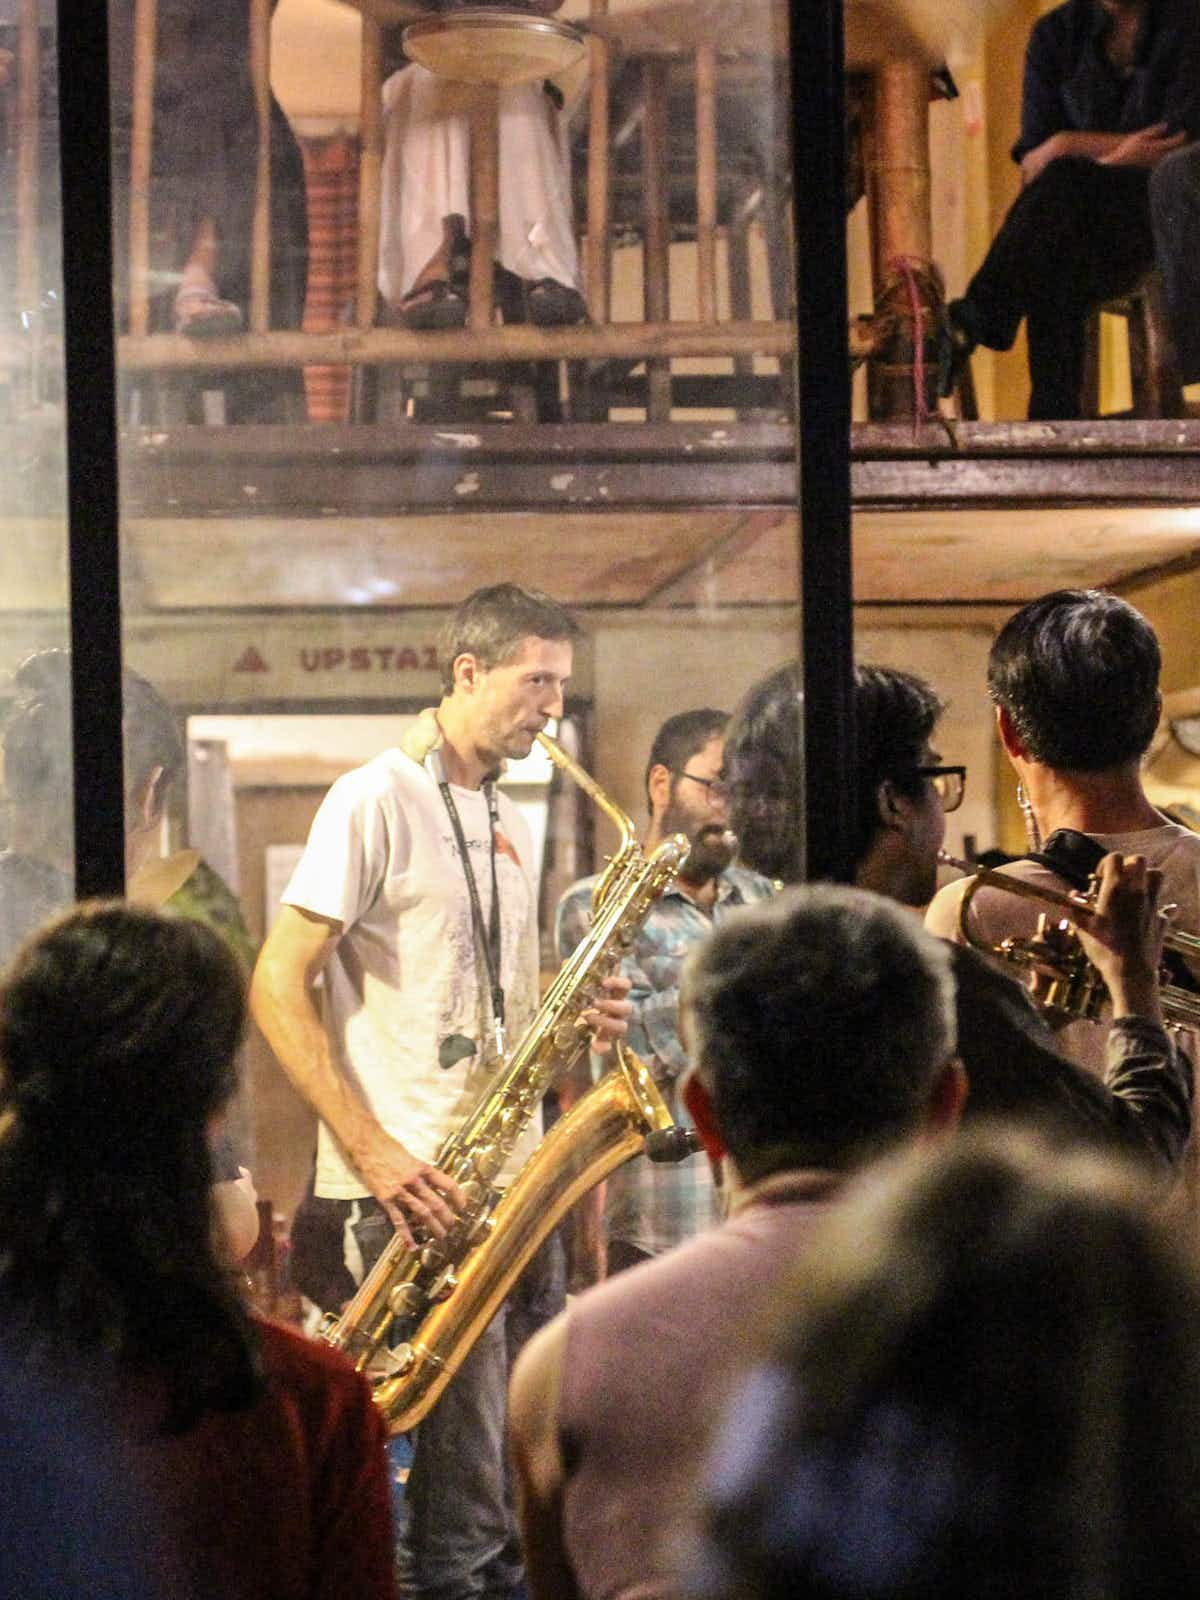 Head to North Gate Jazz Co-Op for live music every night©Alana Morgan / Lonely Planet